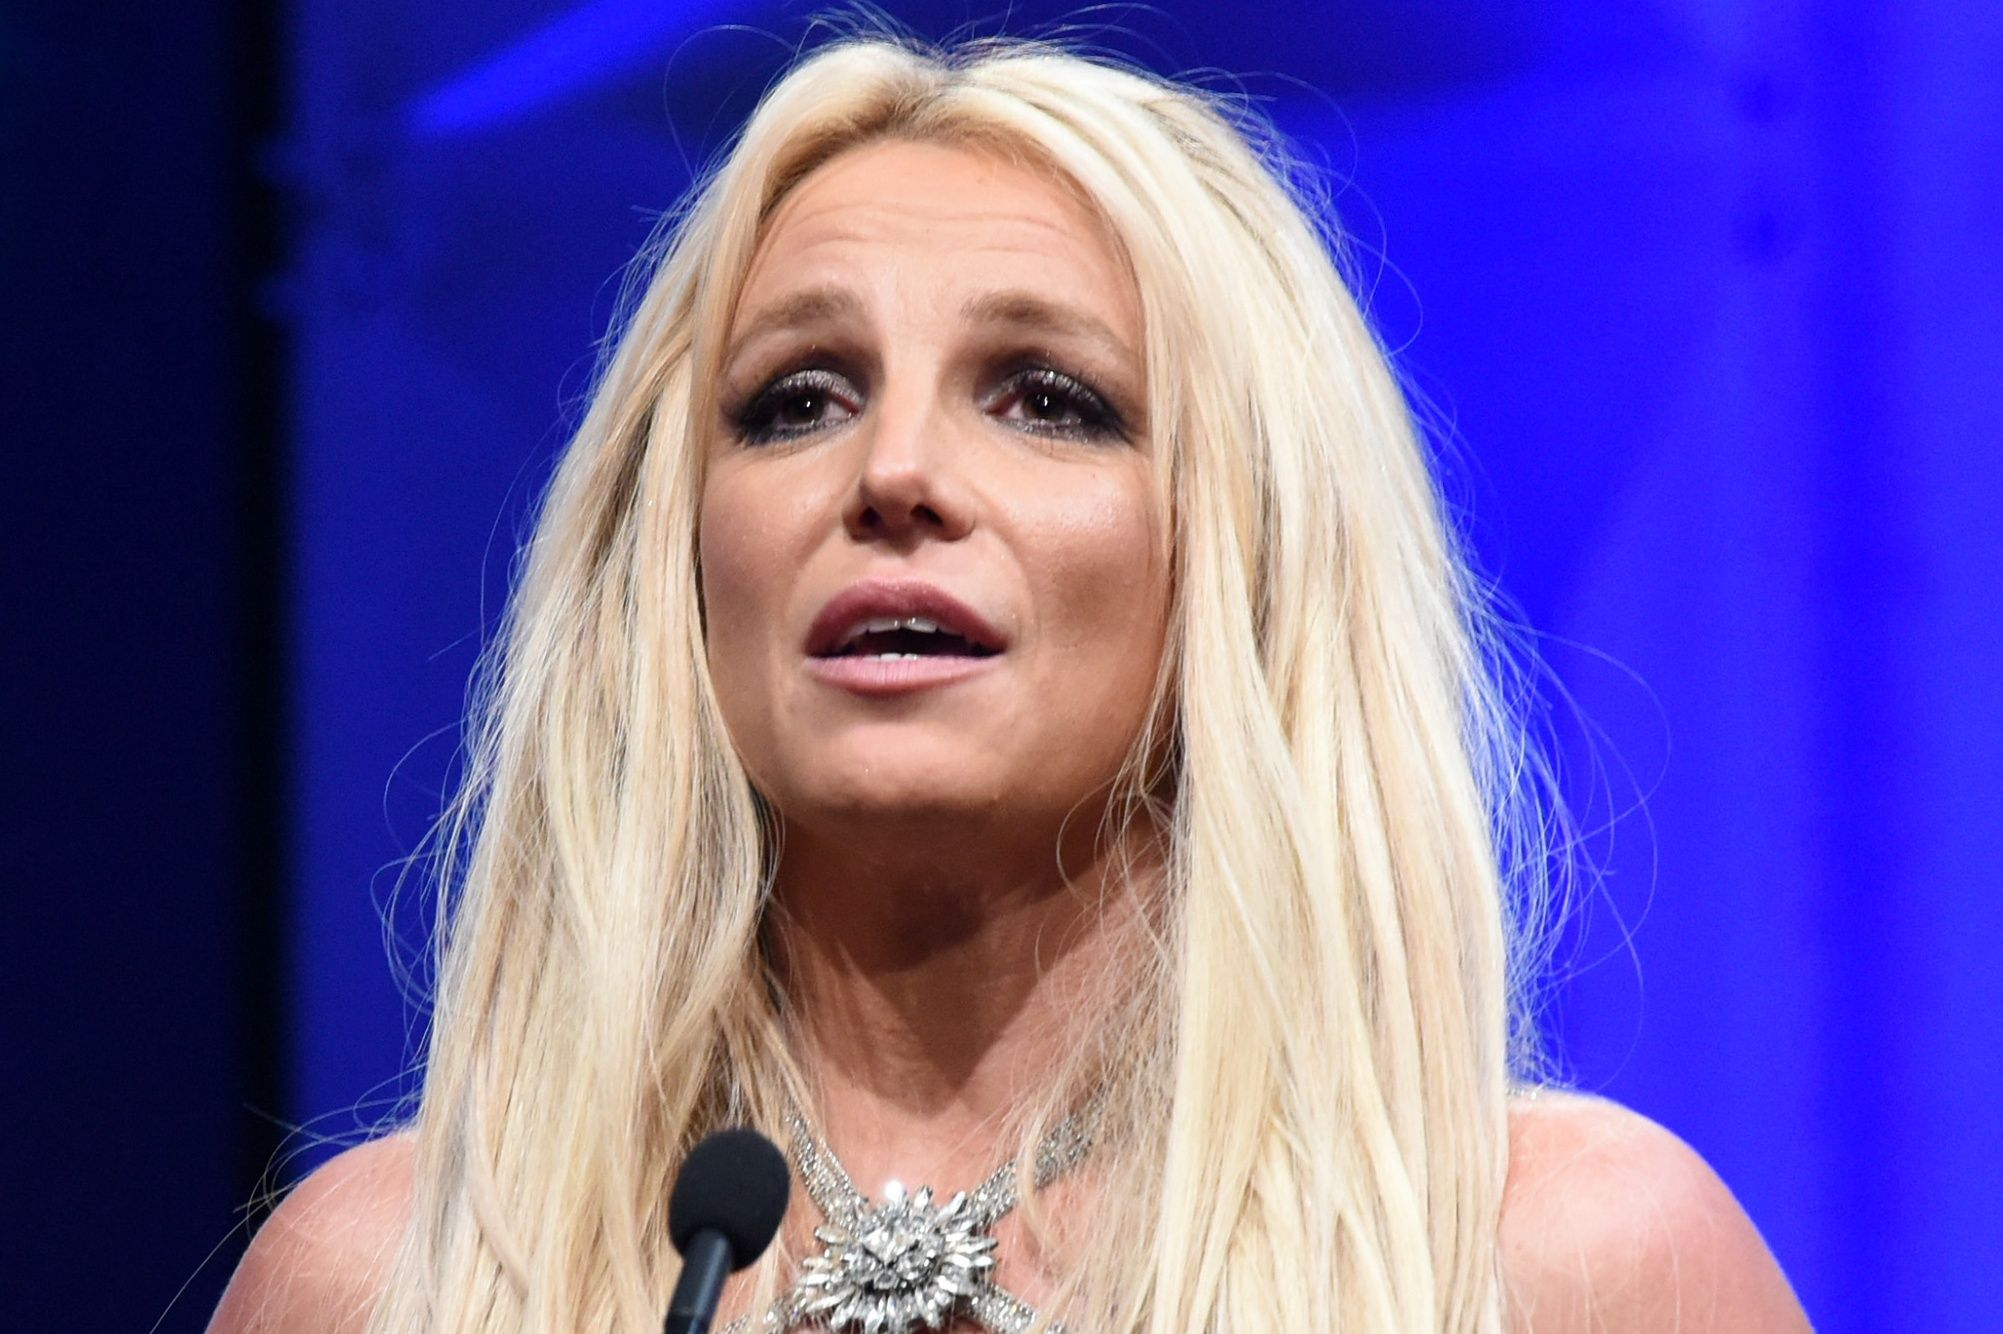 britney-spears-request-to-have-her-father-removed-from-her-conservatorship-denied-again